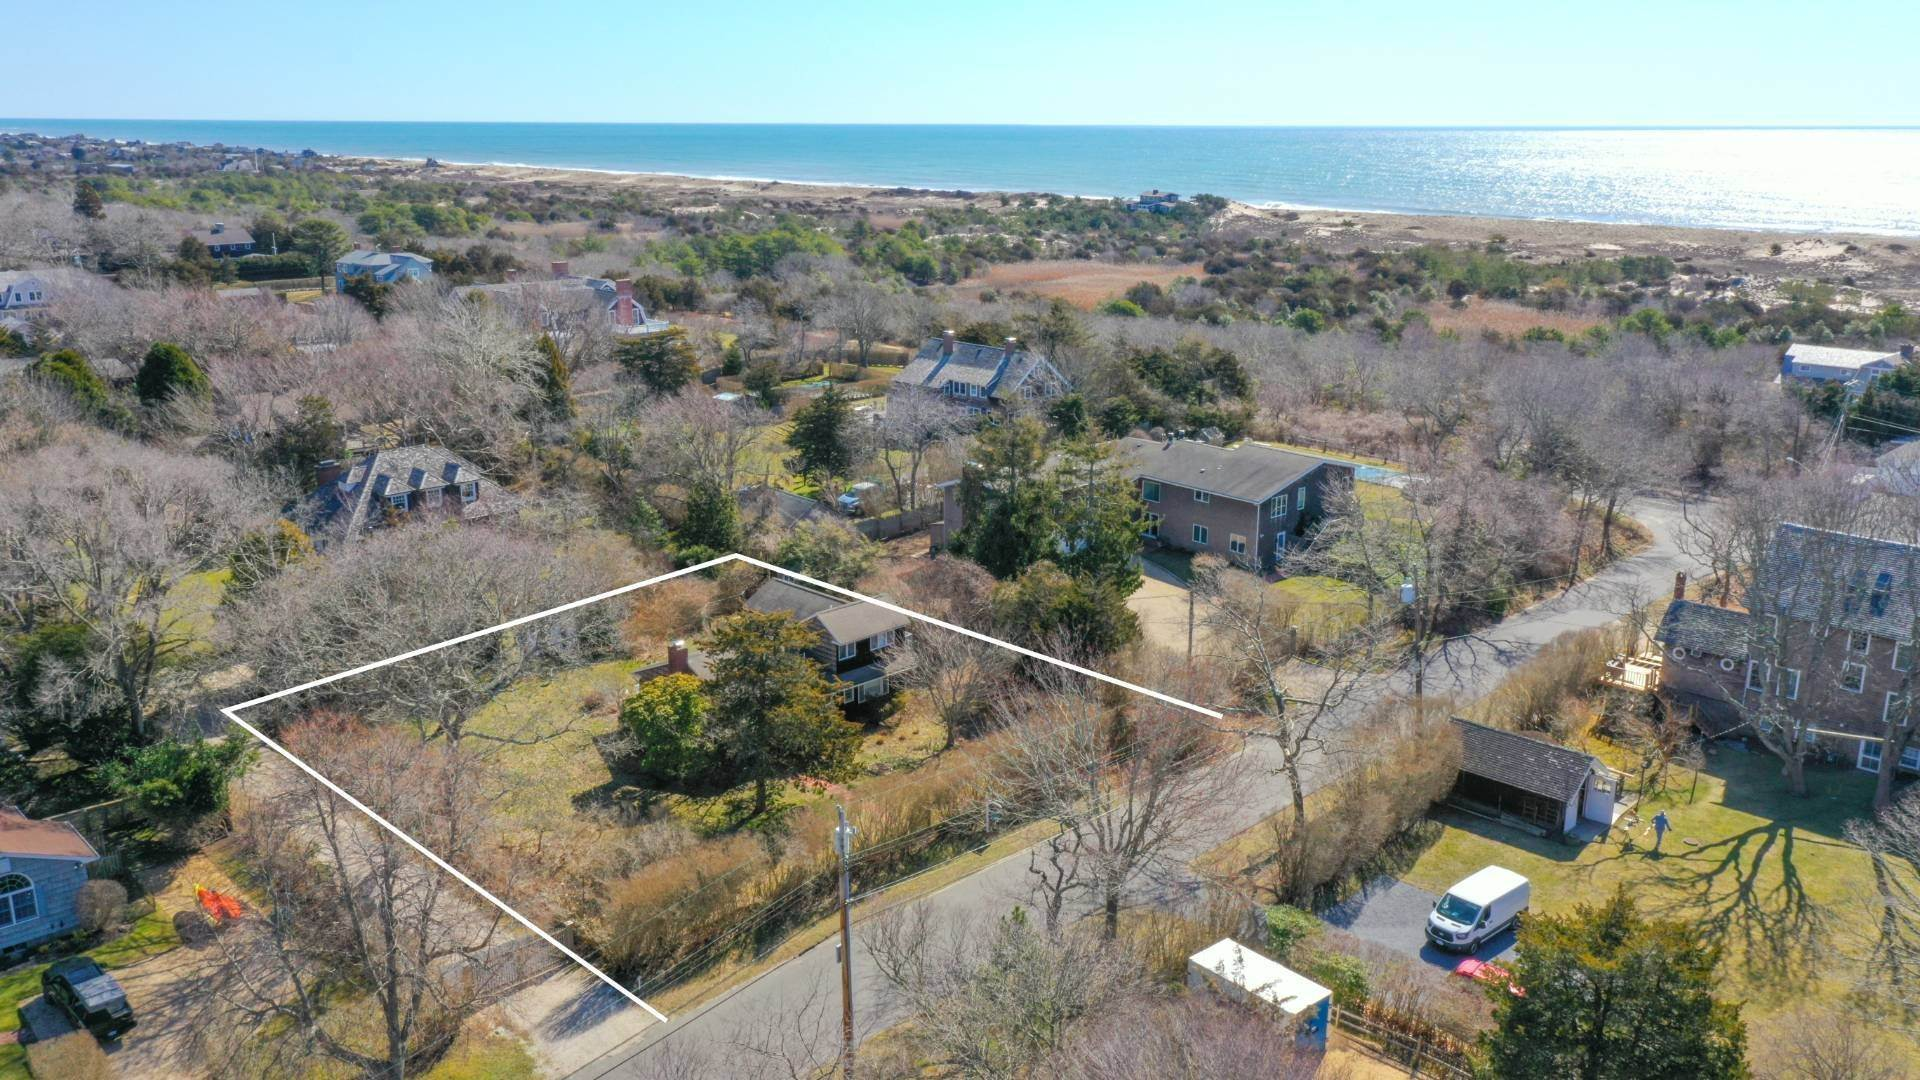 Single Family Home for Sale at Amagansett Lanes Near Bluff Road 121 Hedges La, Amagansett, NY 11930